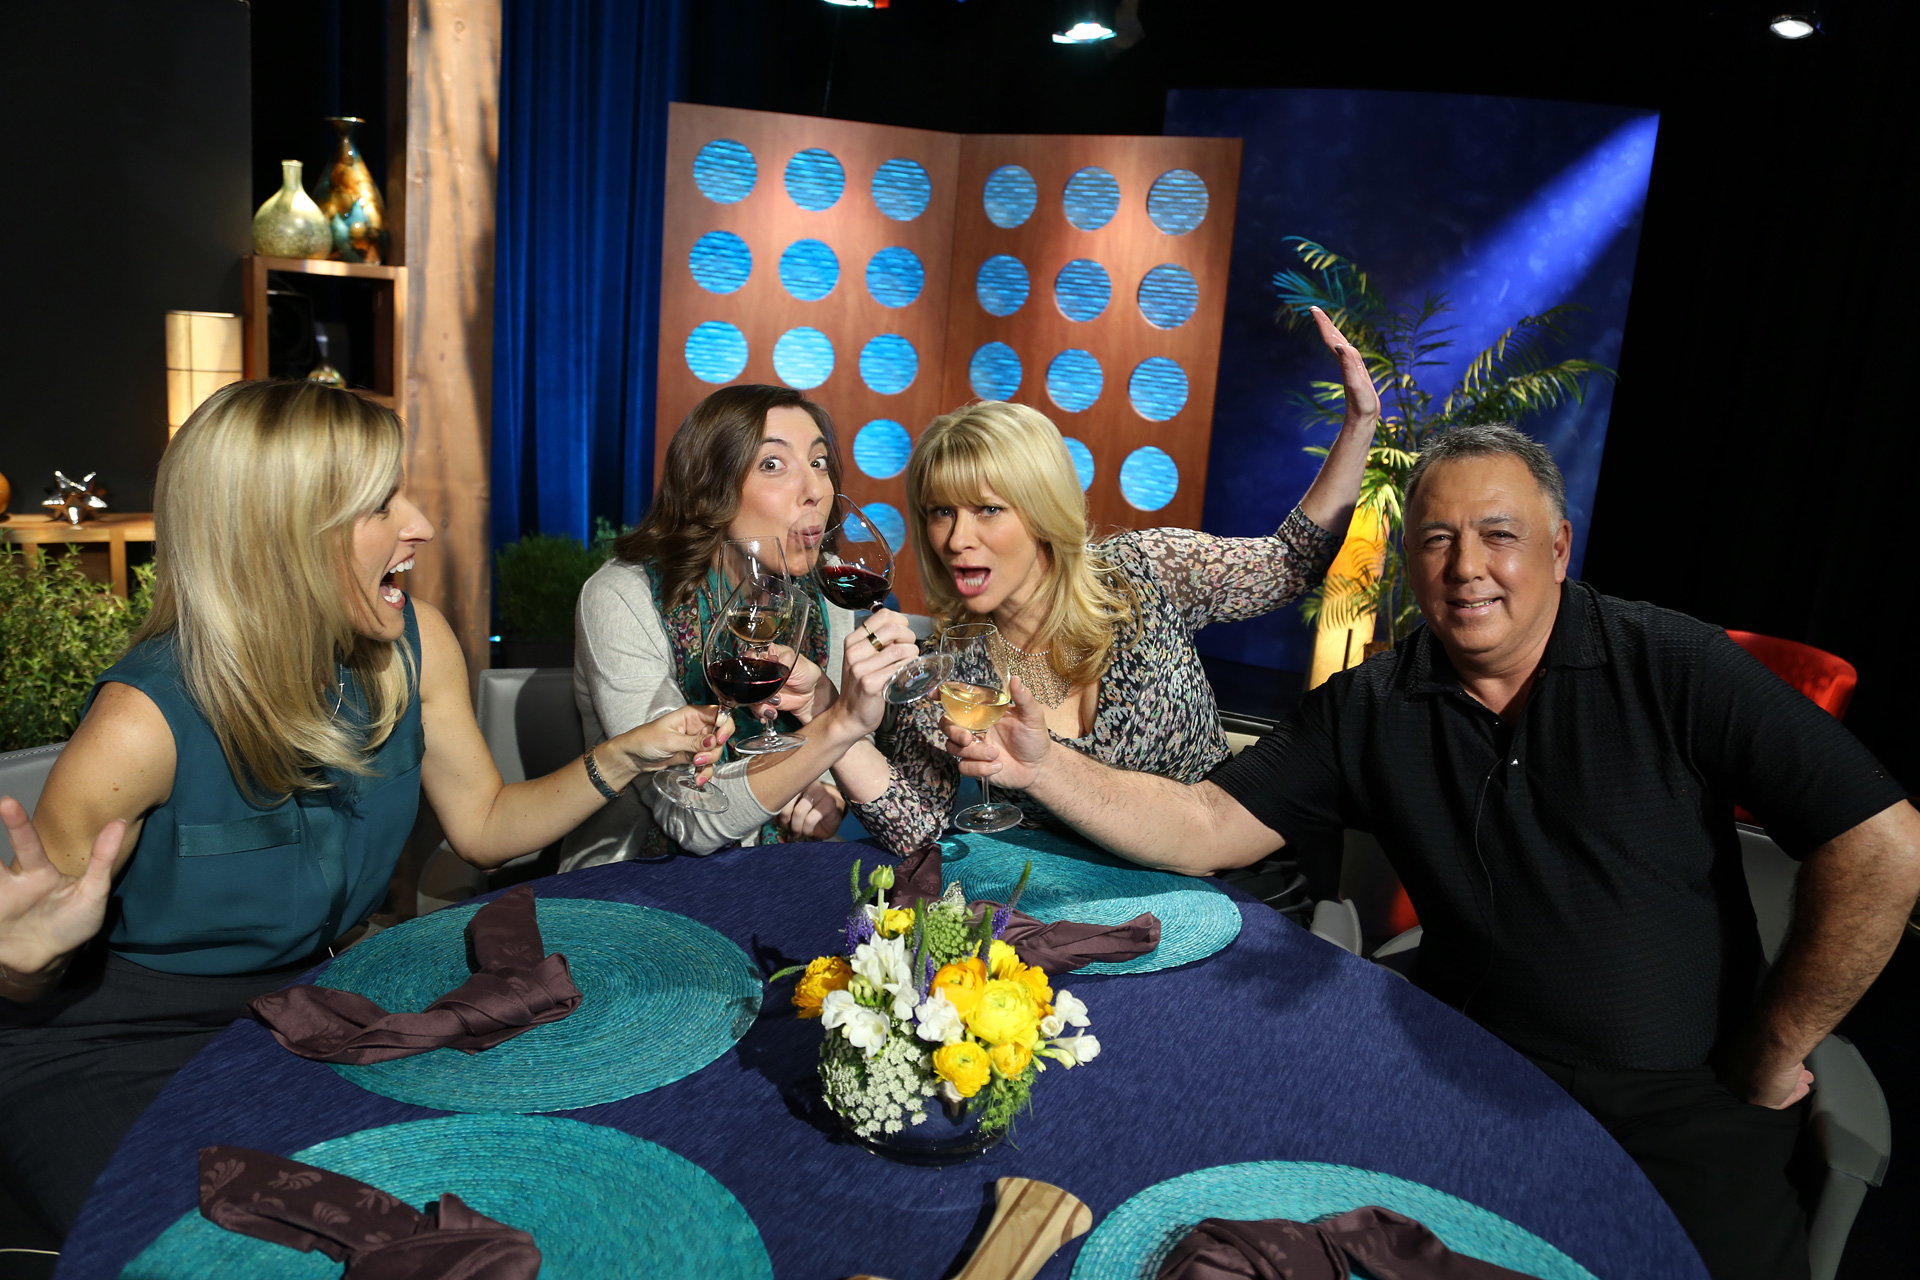 Host Leslie Sbrocco and guests having fun on the set of the episode 10 of season 11.